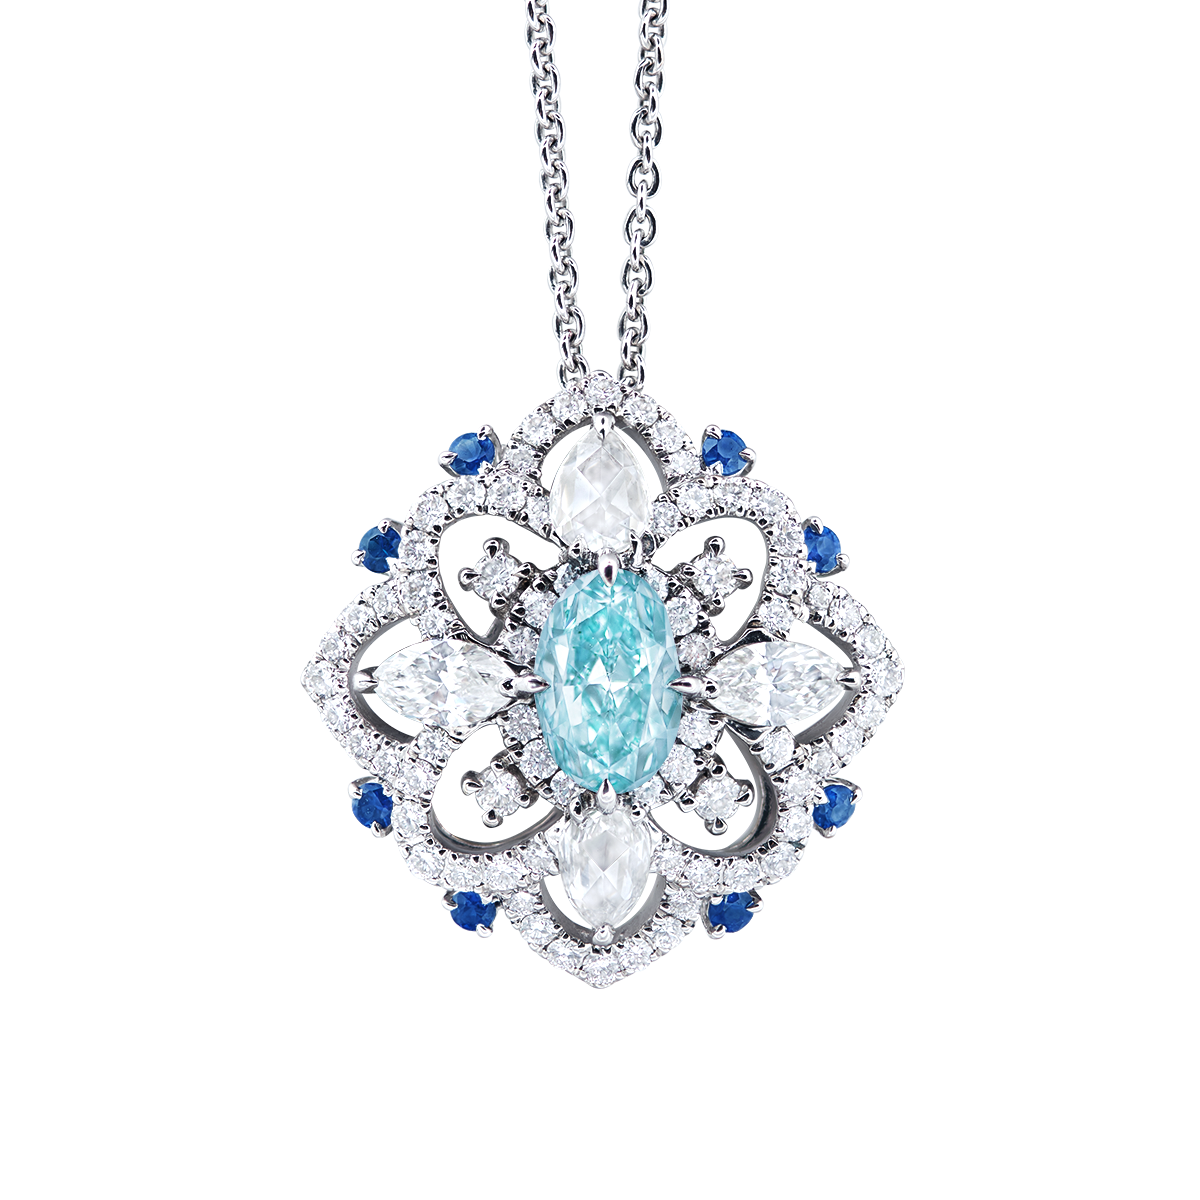 GIA 1.01克拉 濃彩綠藍彩鑽鑽石墜鍊